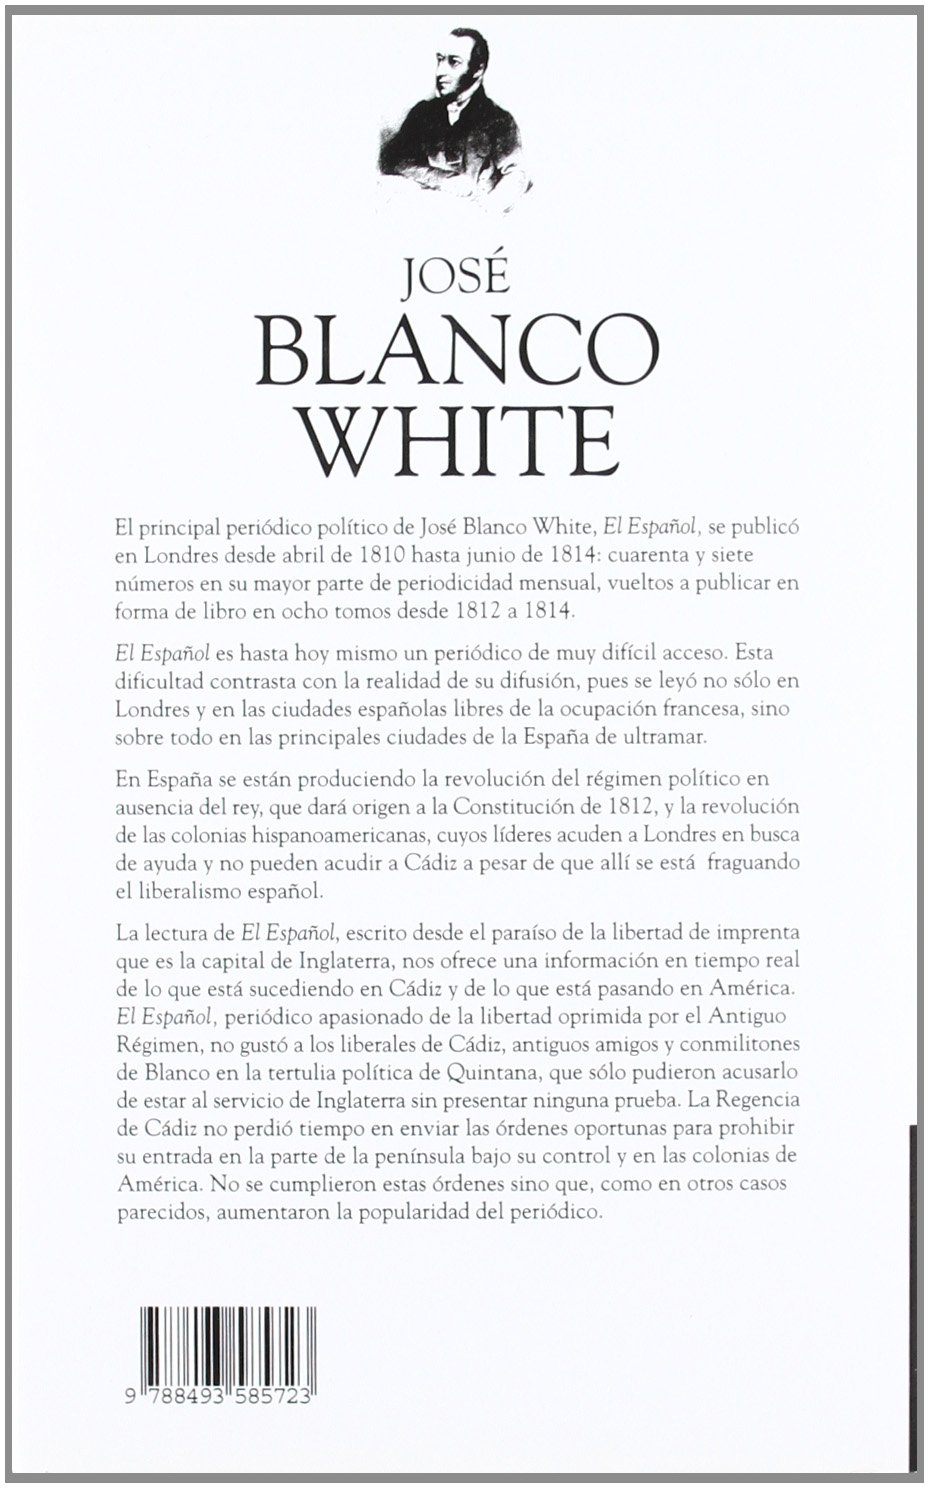 Title: JOSE BLANCO WHITE EL ESPAÑOL OC II: GARNICA: 9788493585723: Amazon.com: Books